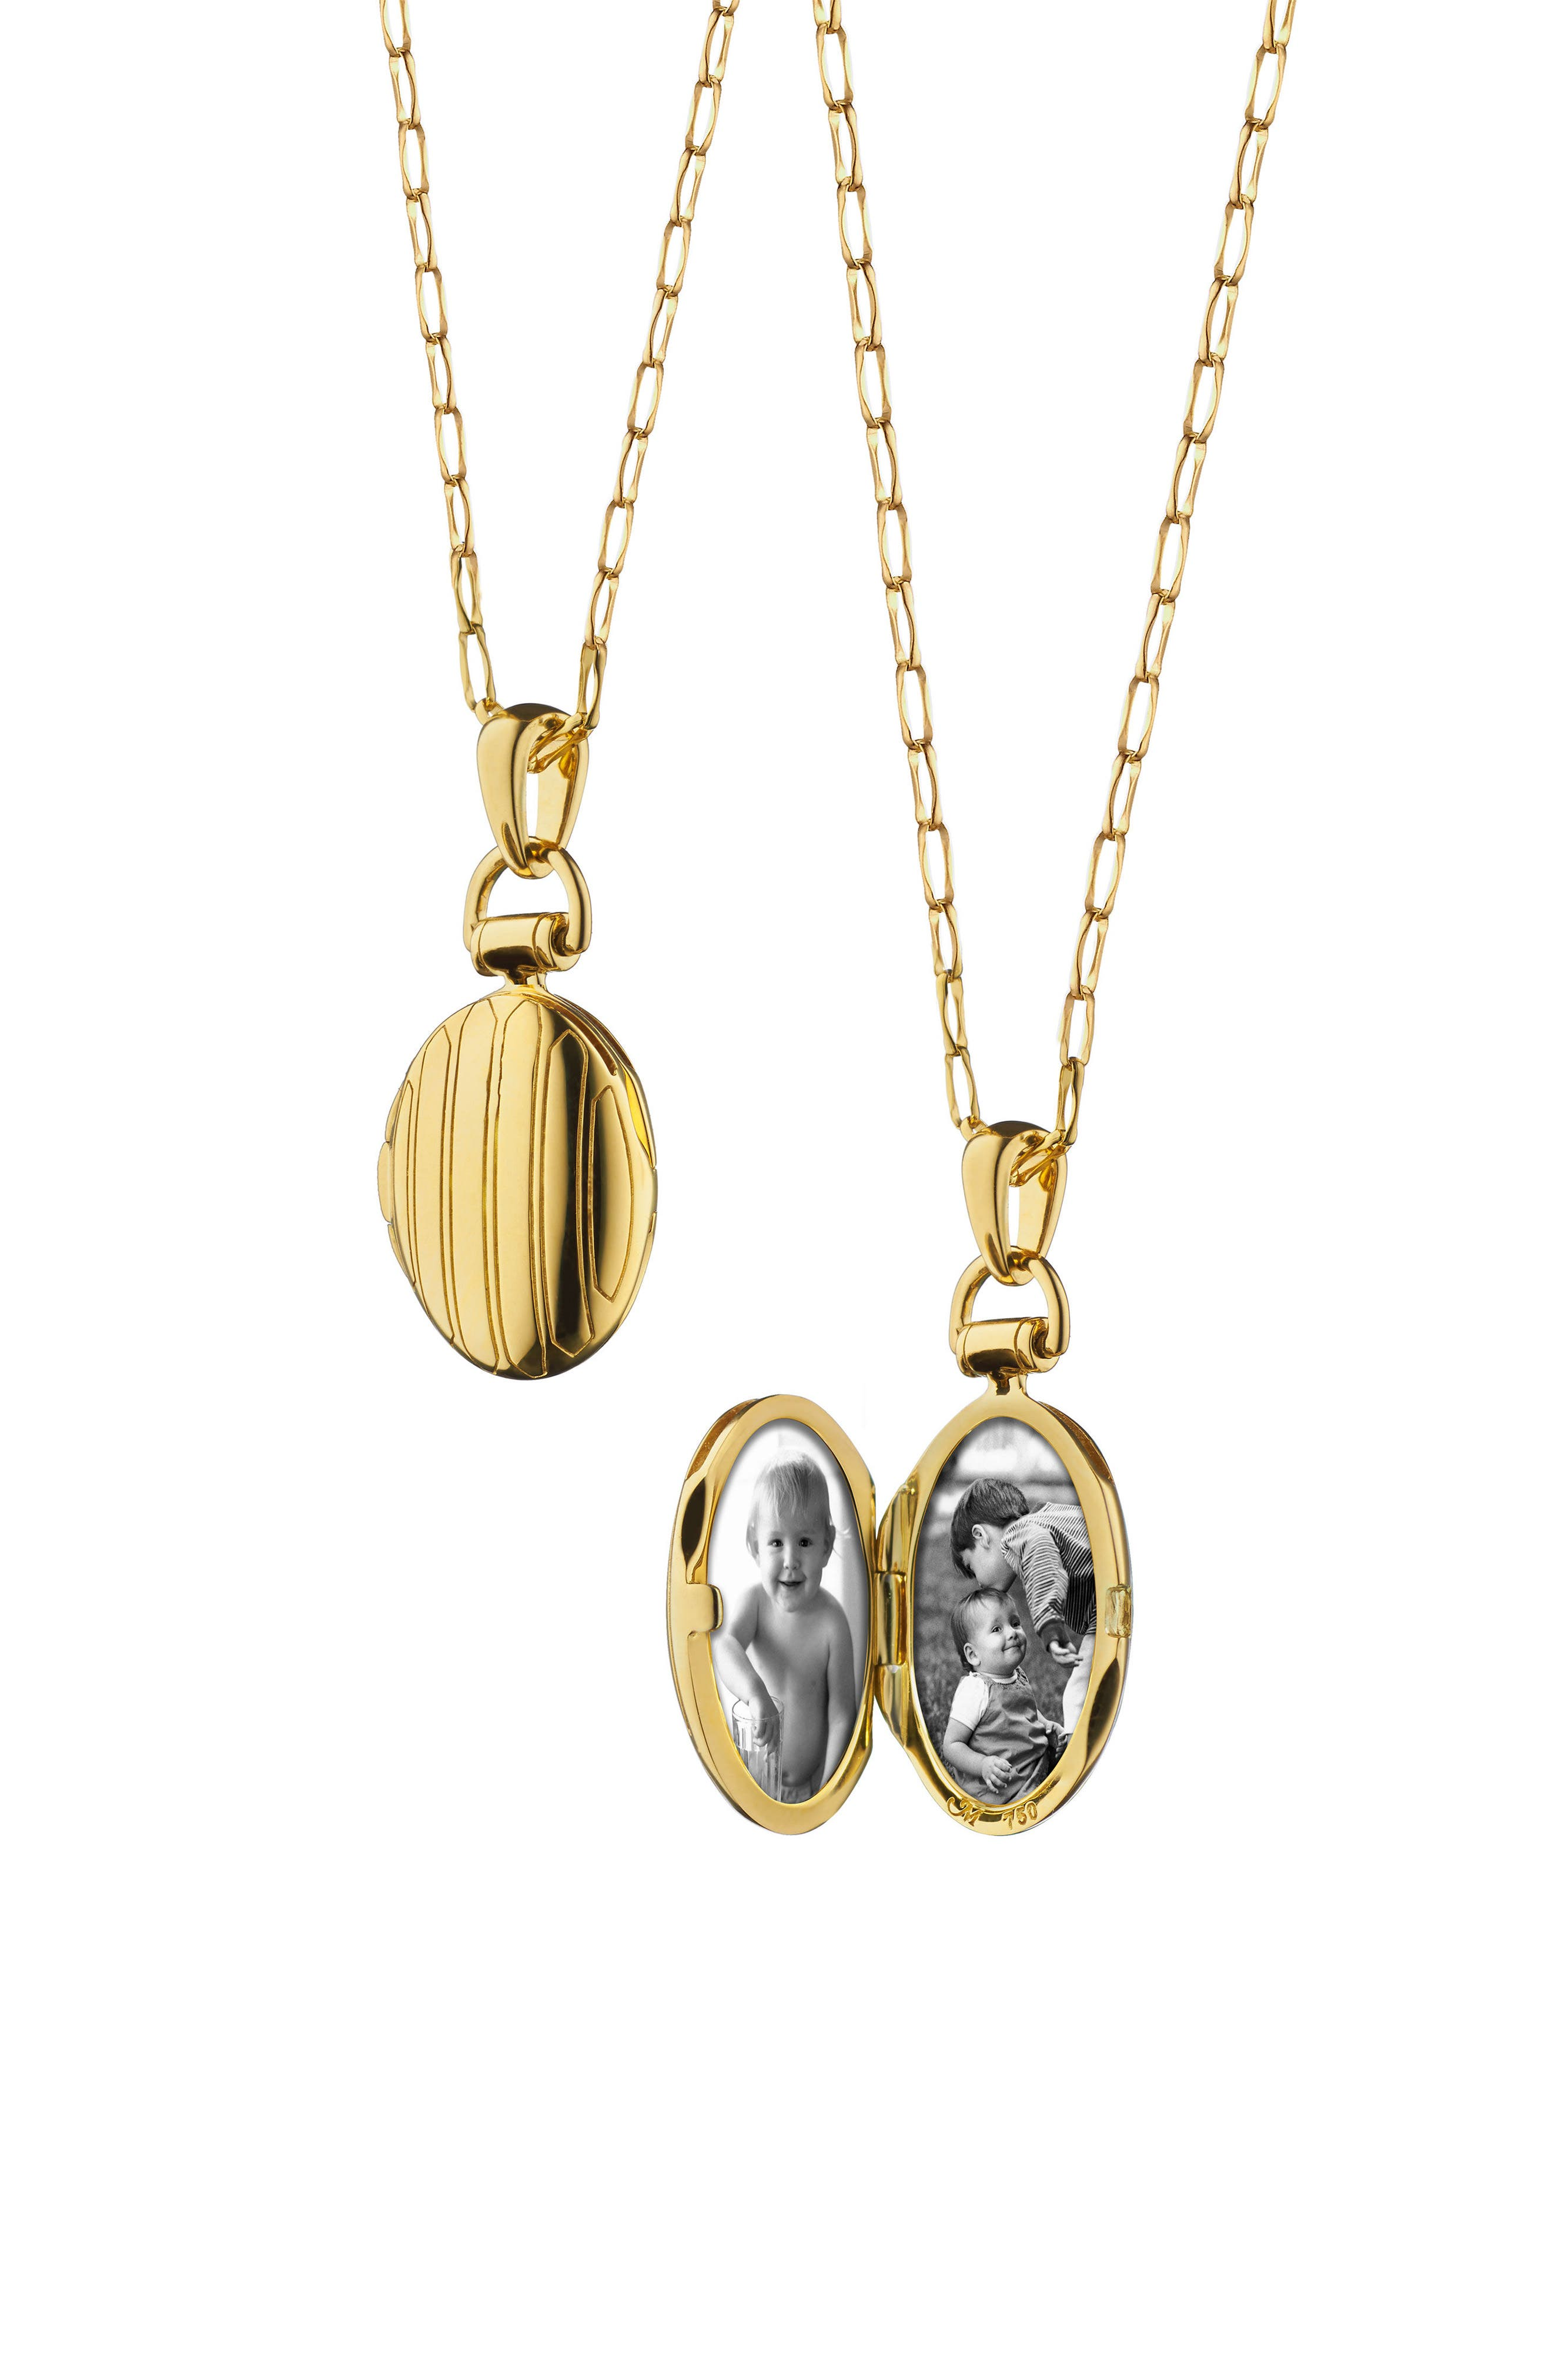 Pinstripe Petite Locket Necklace,                         Main,                         color, 18K YELLOW GOLD